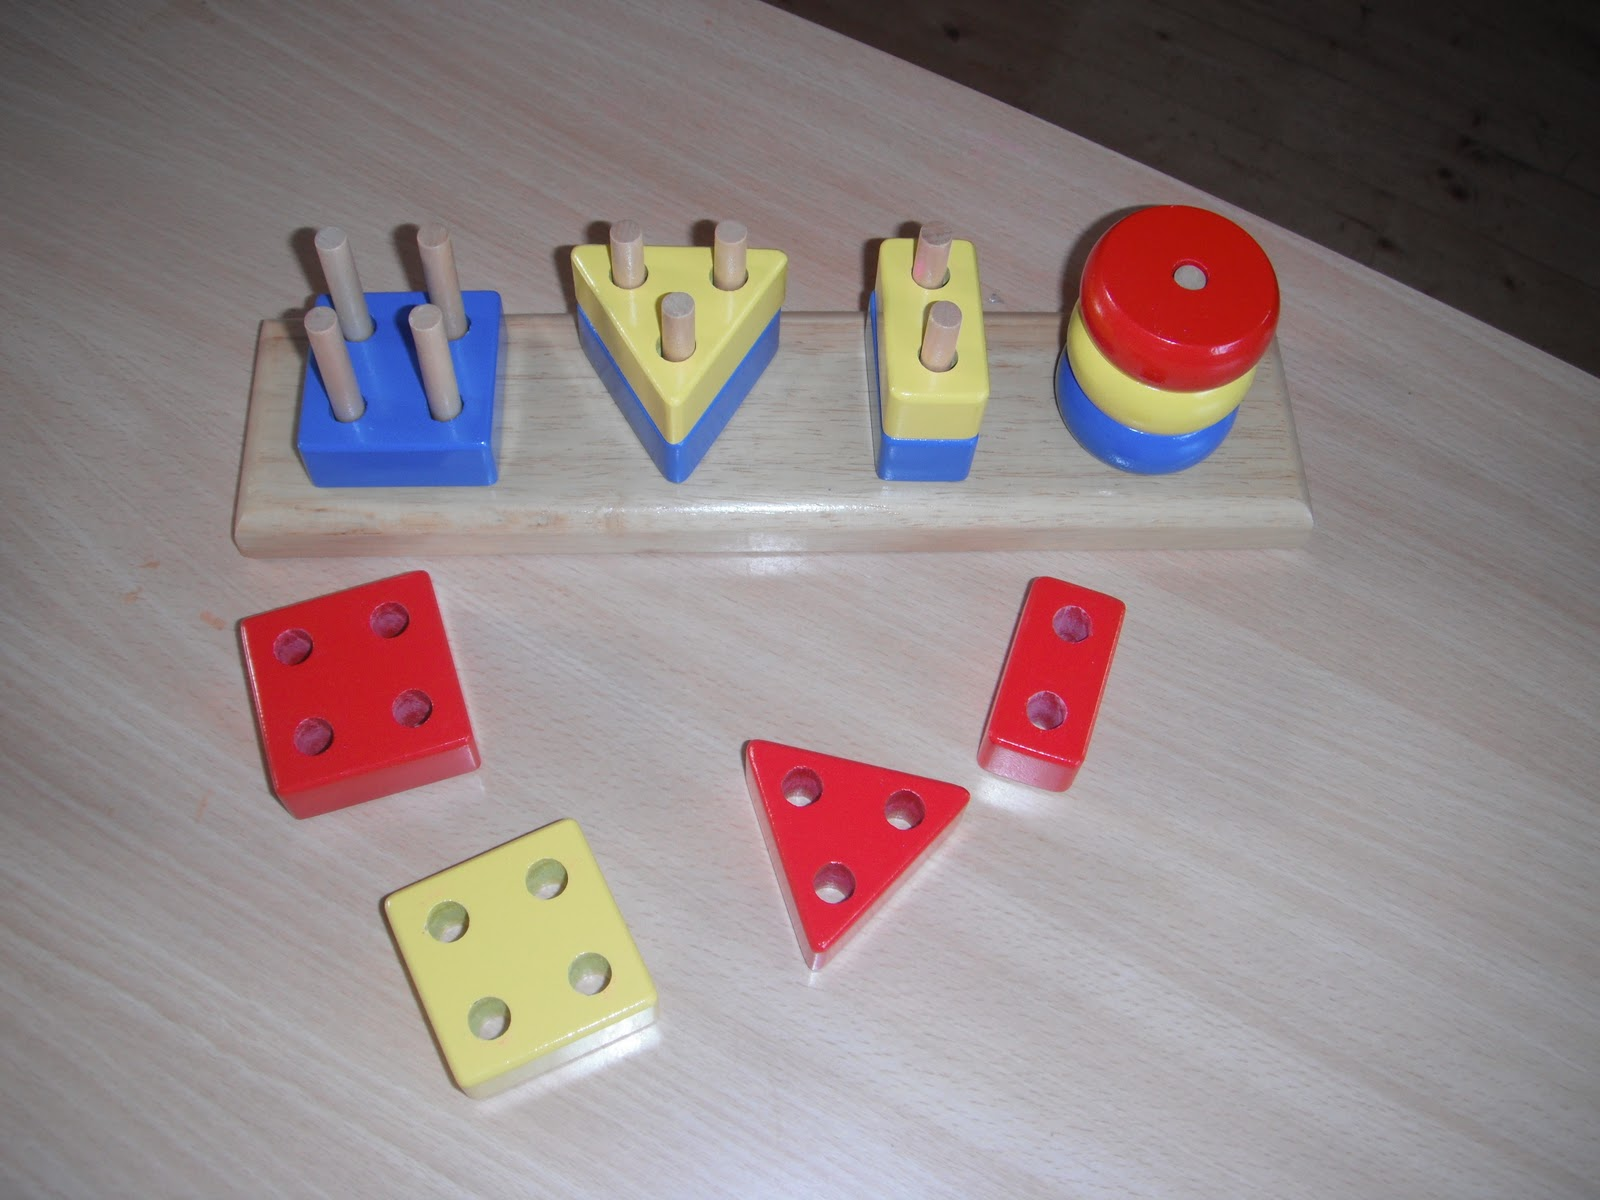 The Guilletos Playful Learning Mathematics Patterning